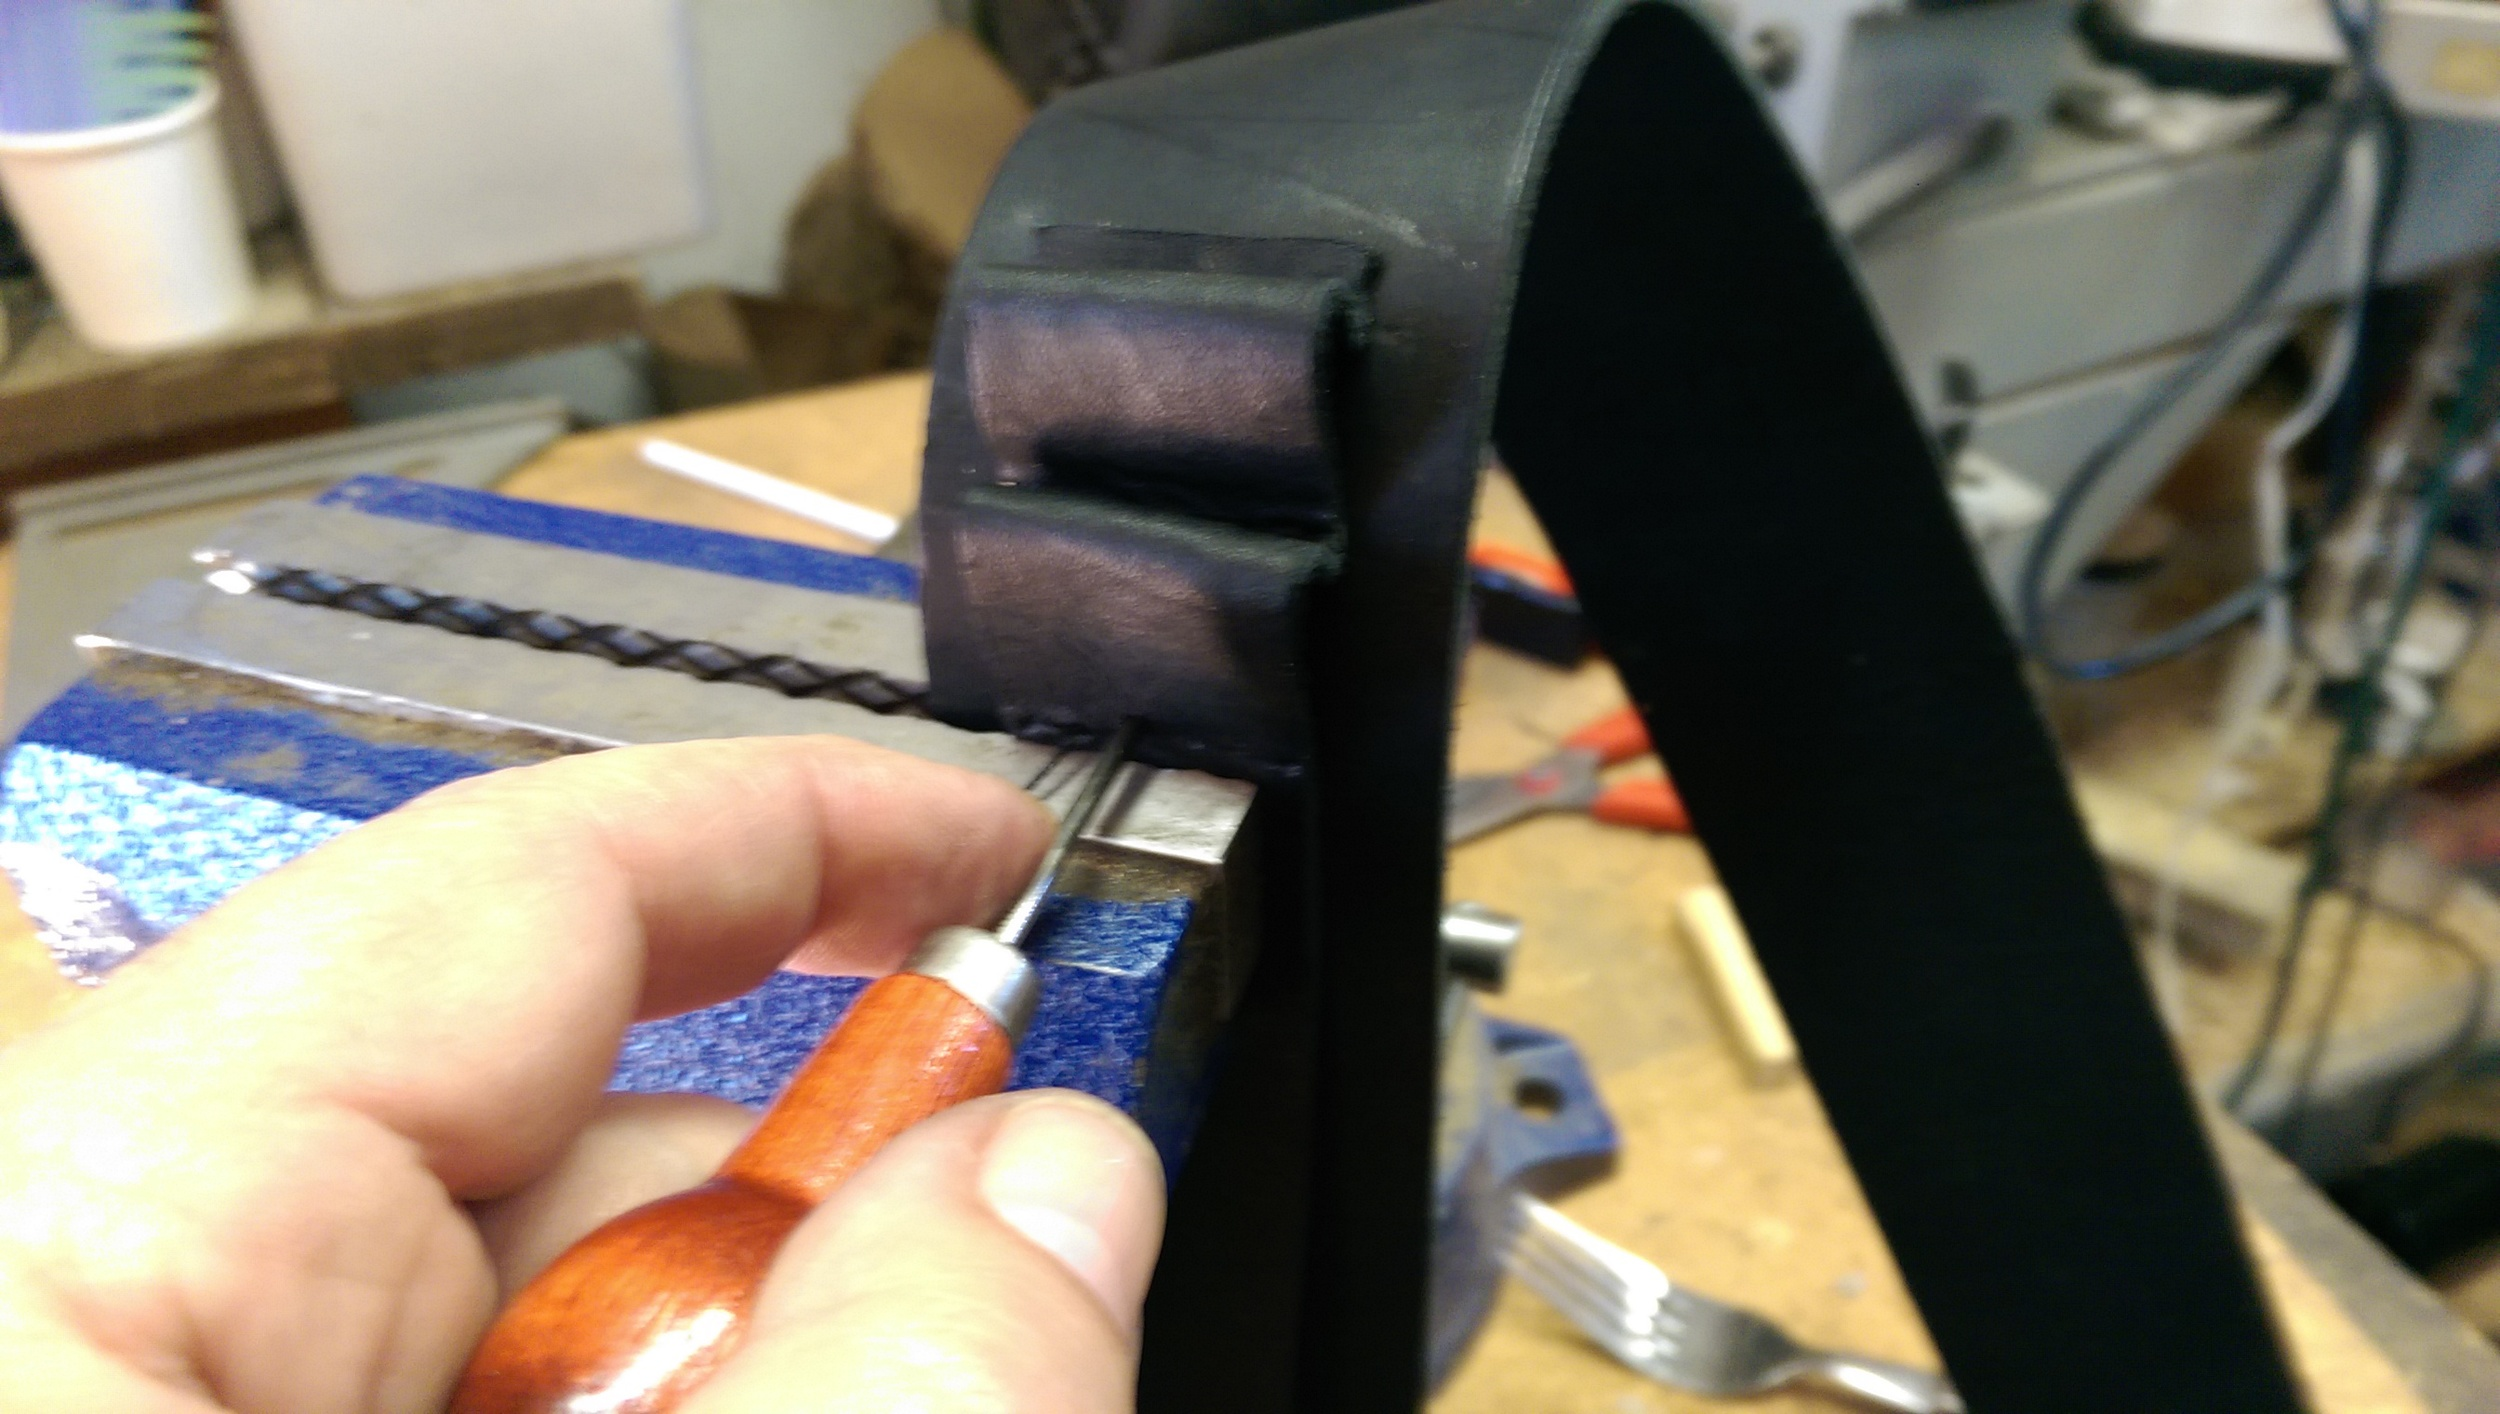 Aligning the spacing lines on the straps and then akligning to the vice jaws in order to punch the stitching holes